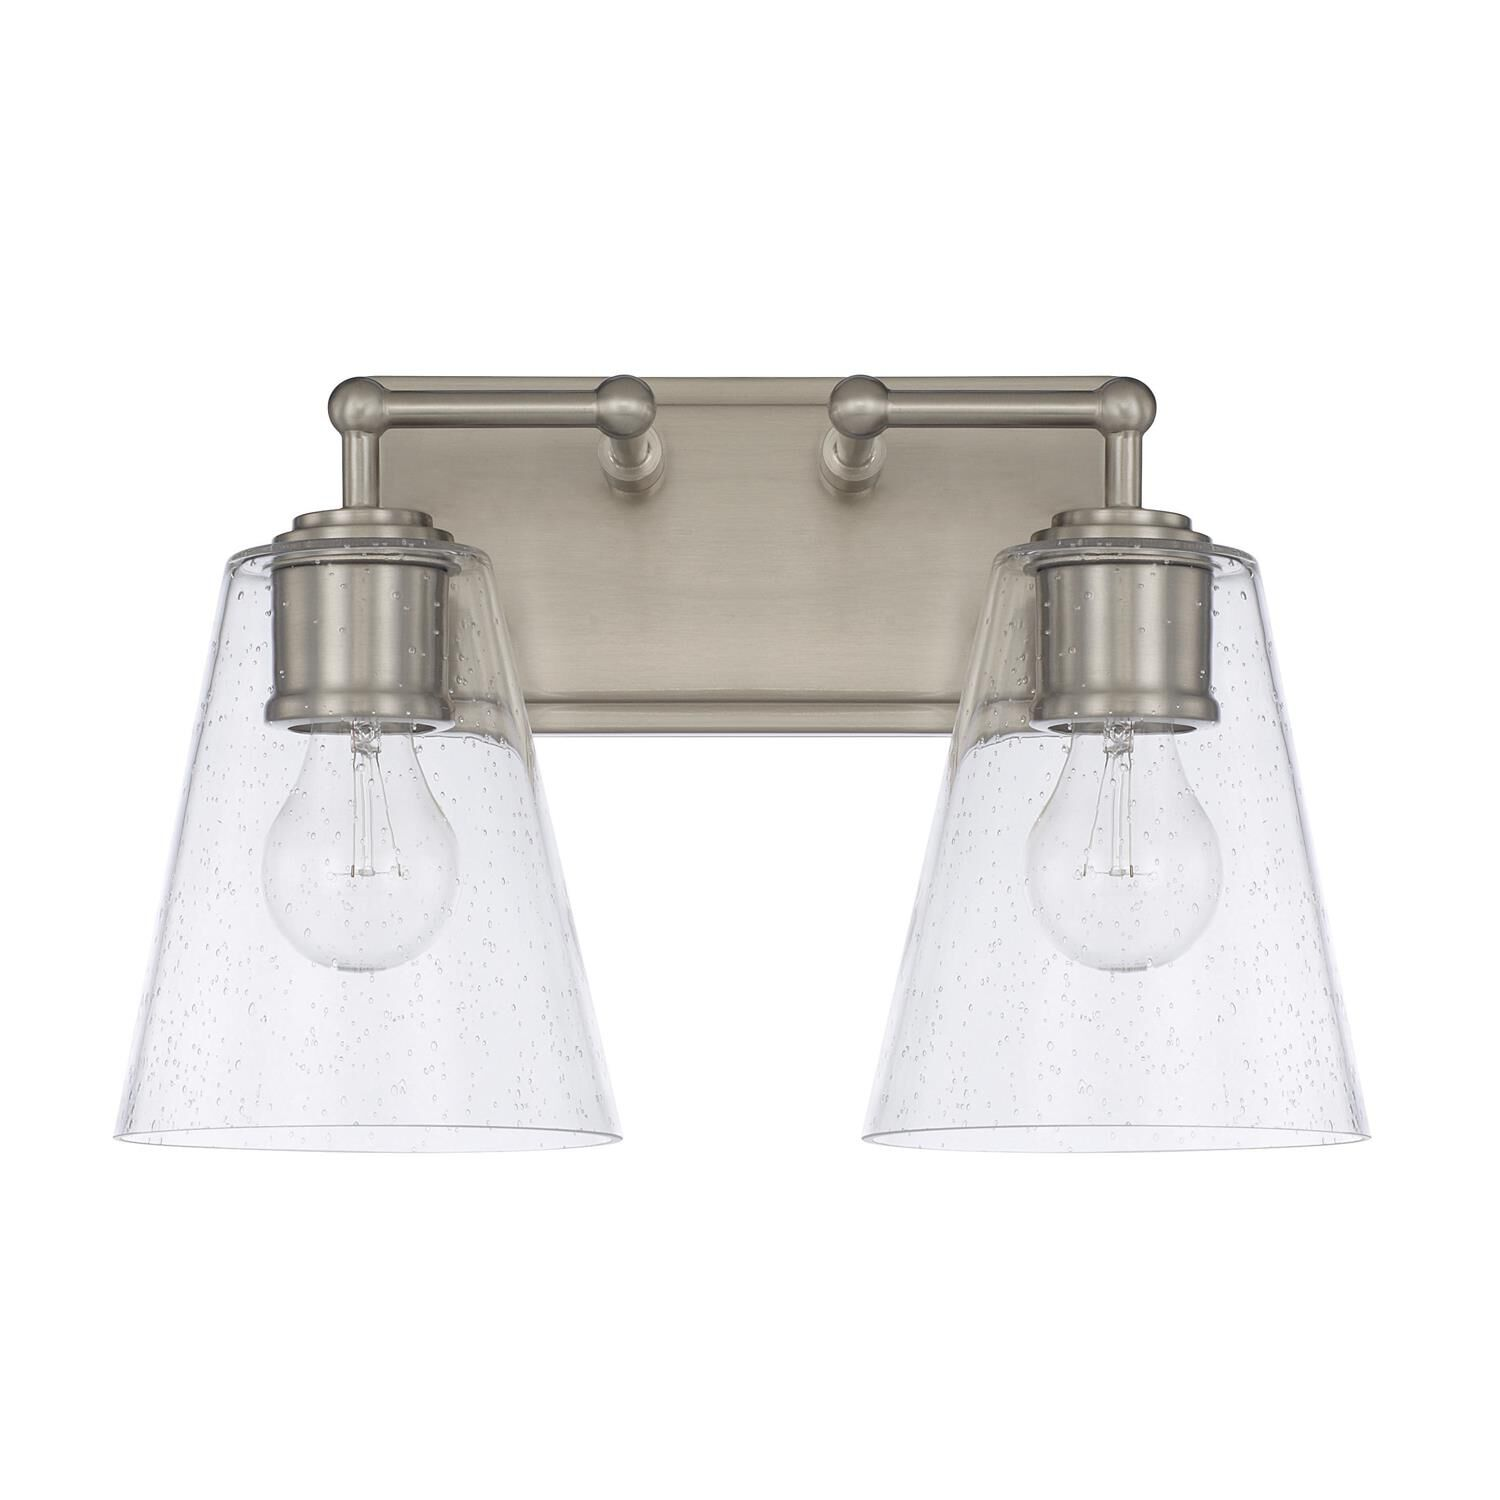 Capital Lighting Fixture Company 14 Inch 2 Light Bath Vanity Light - 121721bn-463 - Transitional